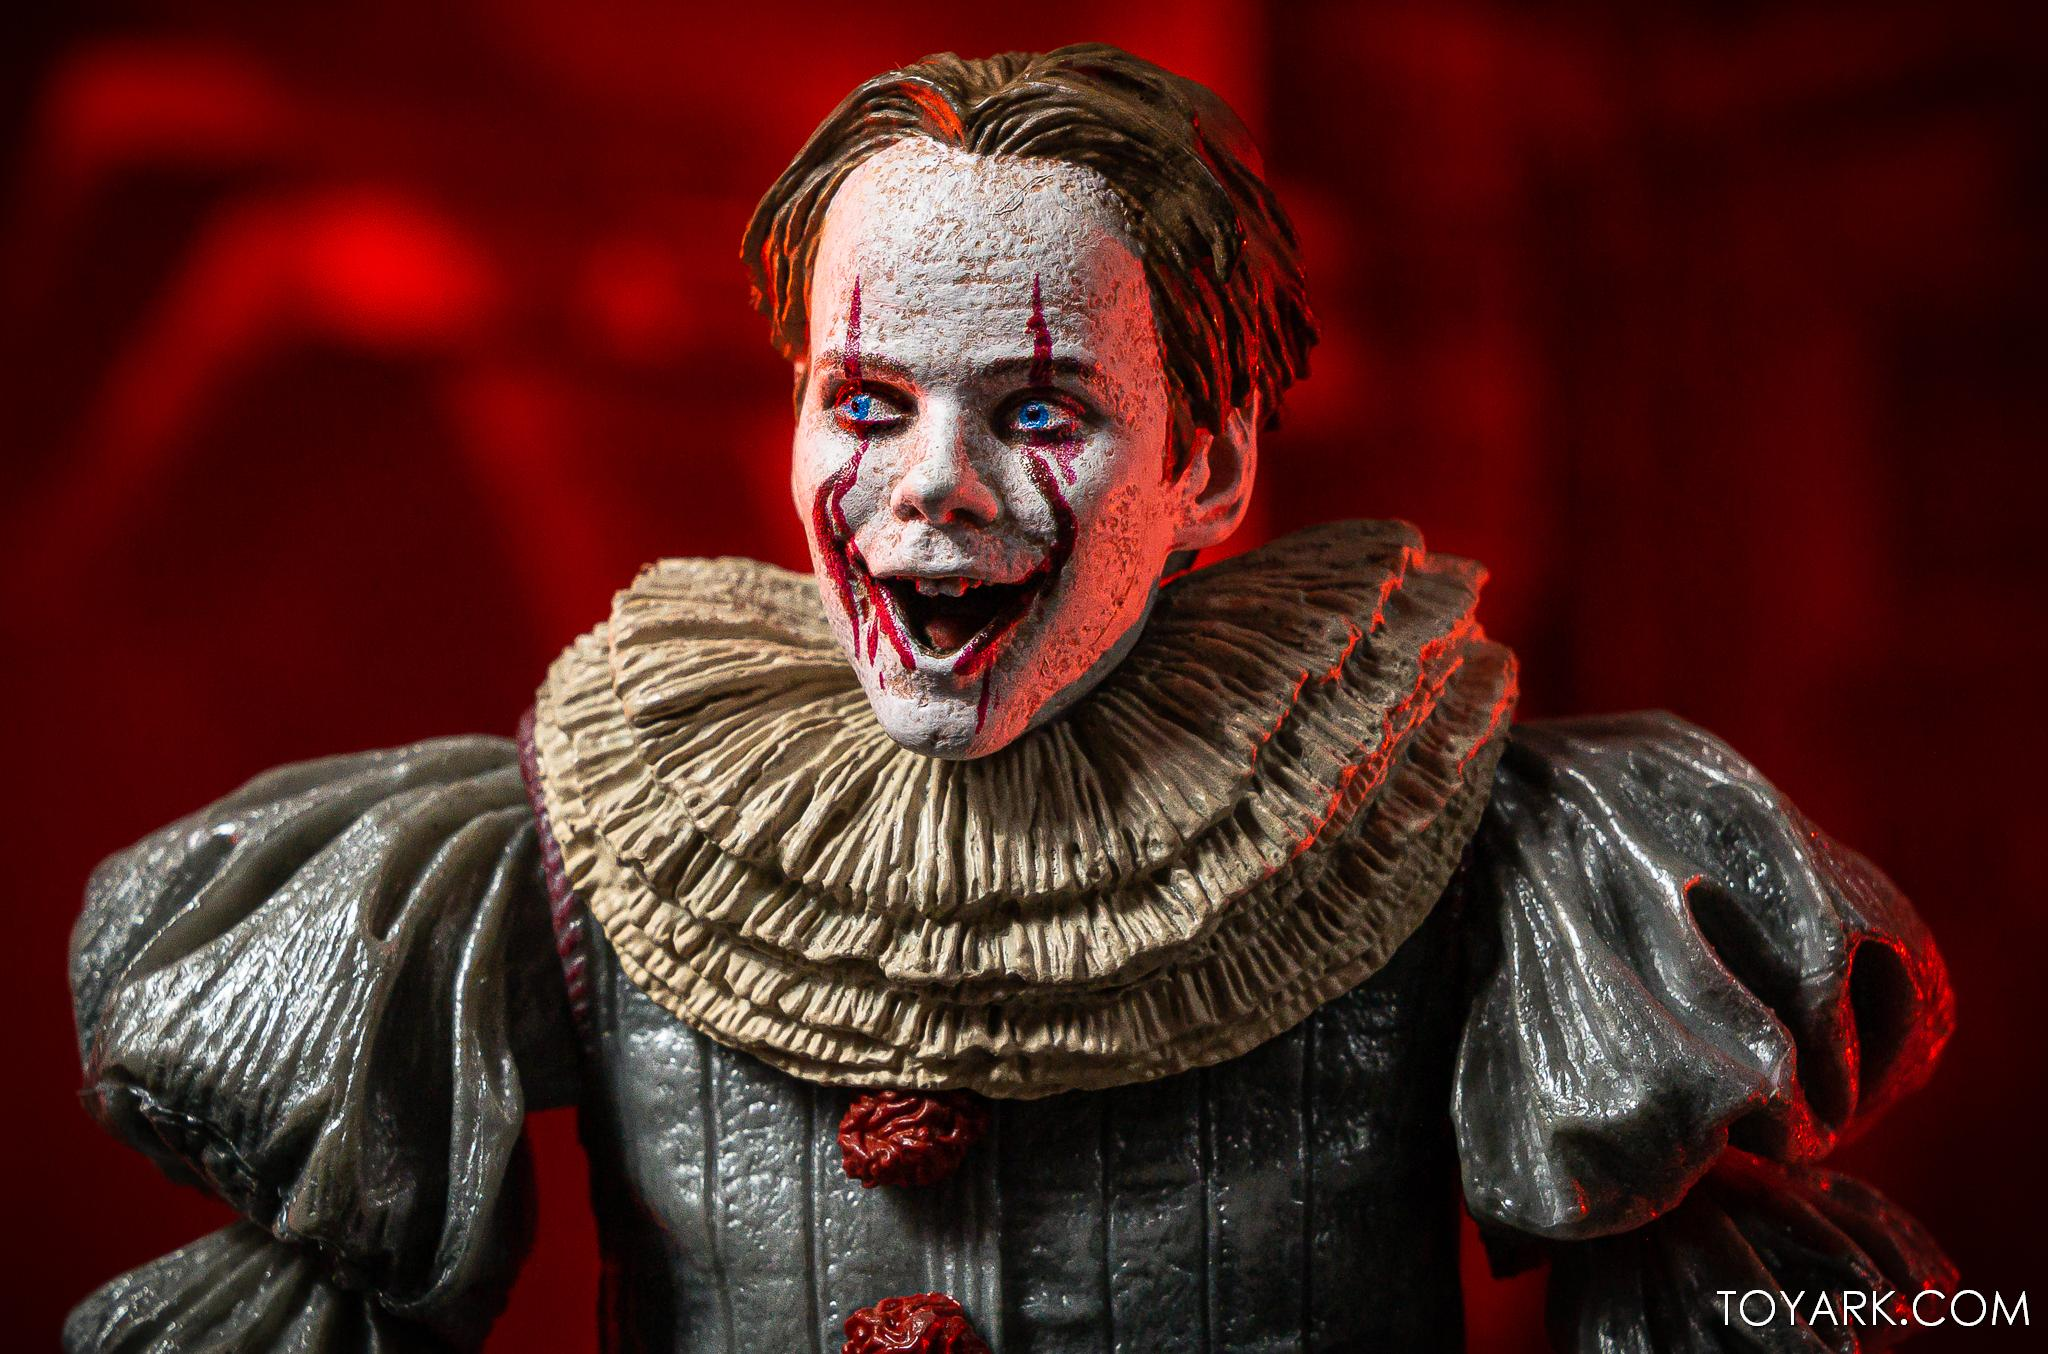 https://news.toyark.com/wp-content/uploads/sites/4/2020/06/NECA-IT-2-Ultimate-Pennywise-030.jpg